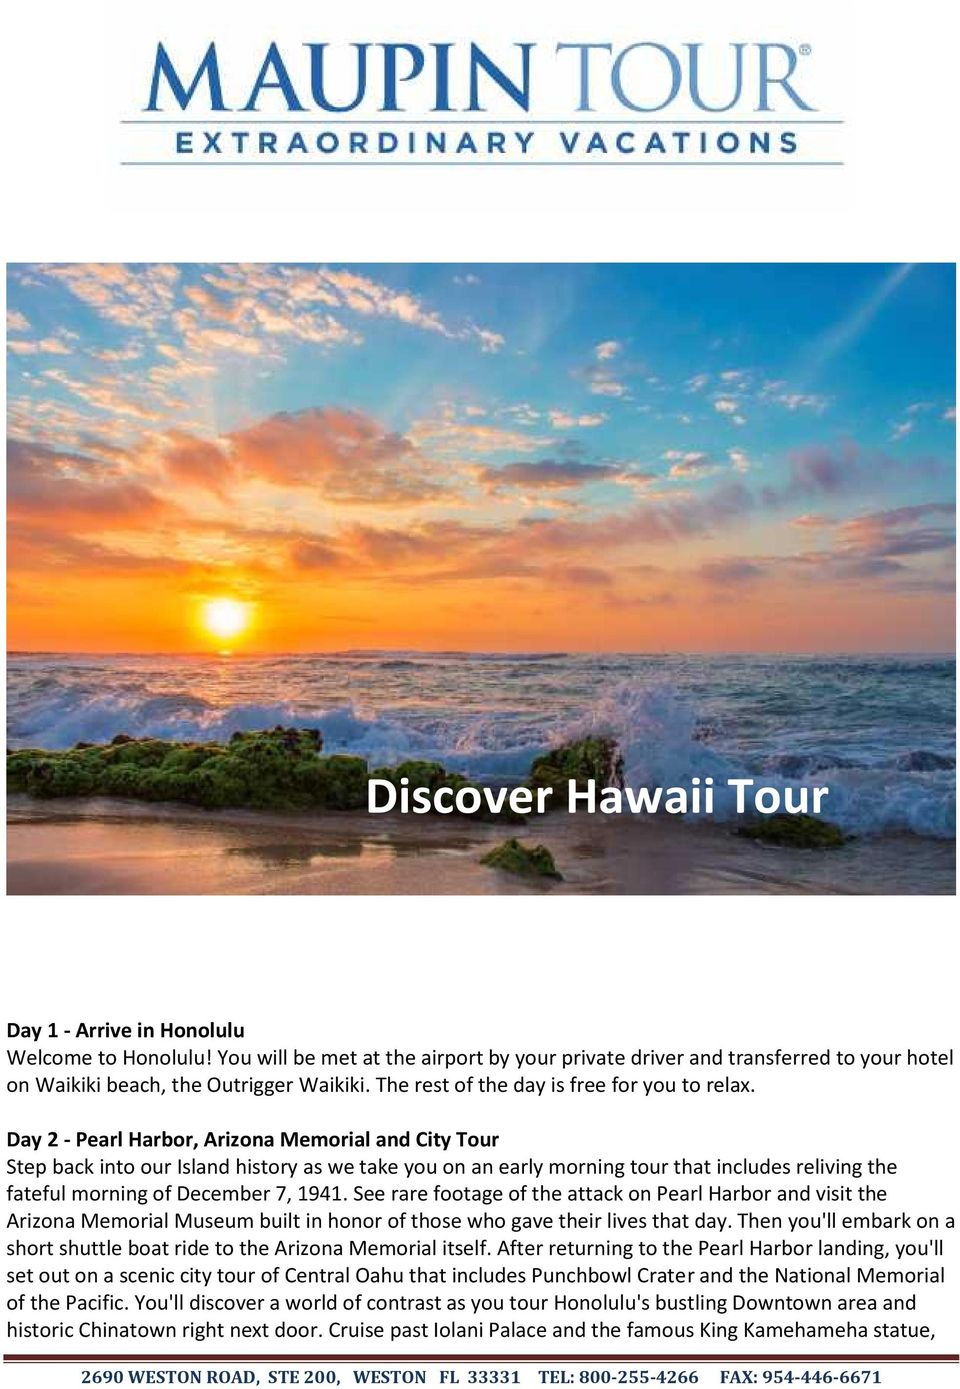 Day 2 - Pearl Harbor, Arizona Memorial and City Tour Step back into our Island history as we take you on an early morning tour that includes reliving the fateful morning of December 7, 1941.